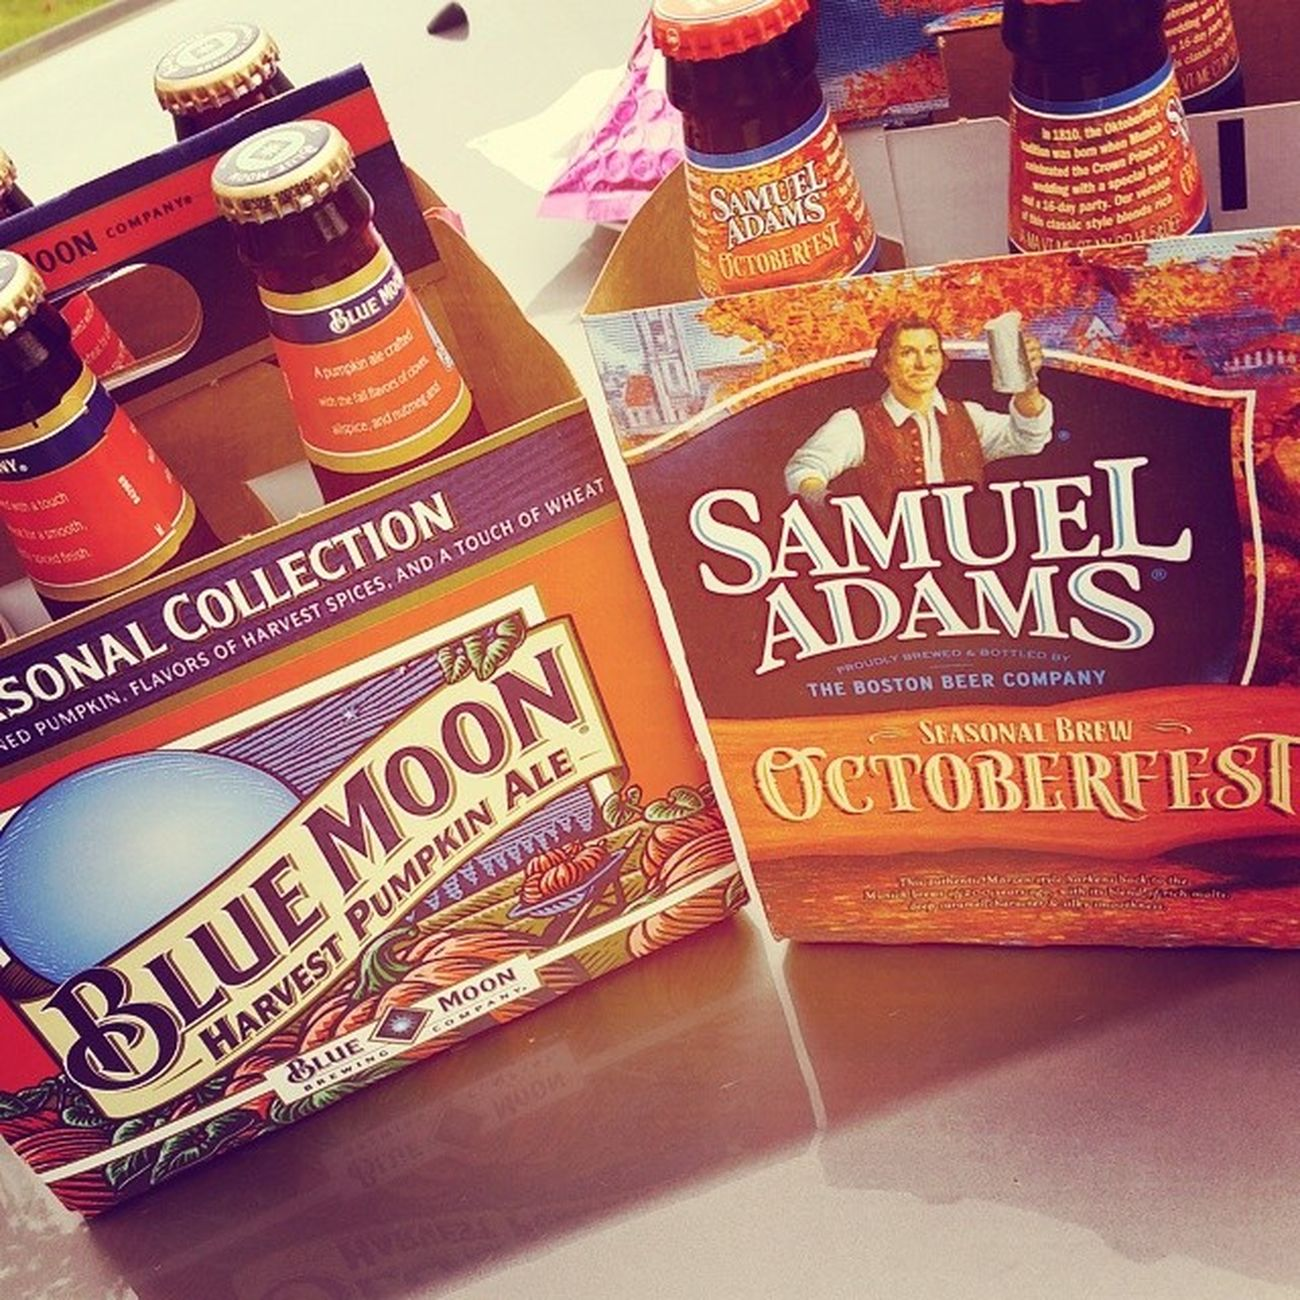 Can't wait to try these! Bluemoon Samueladams Octoberfest